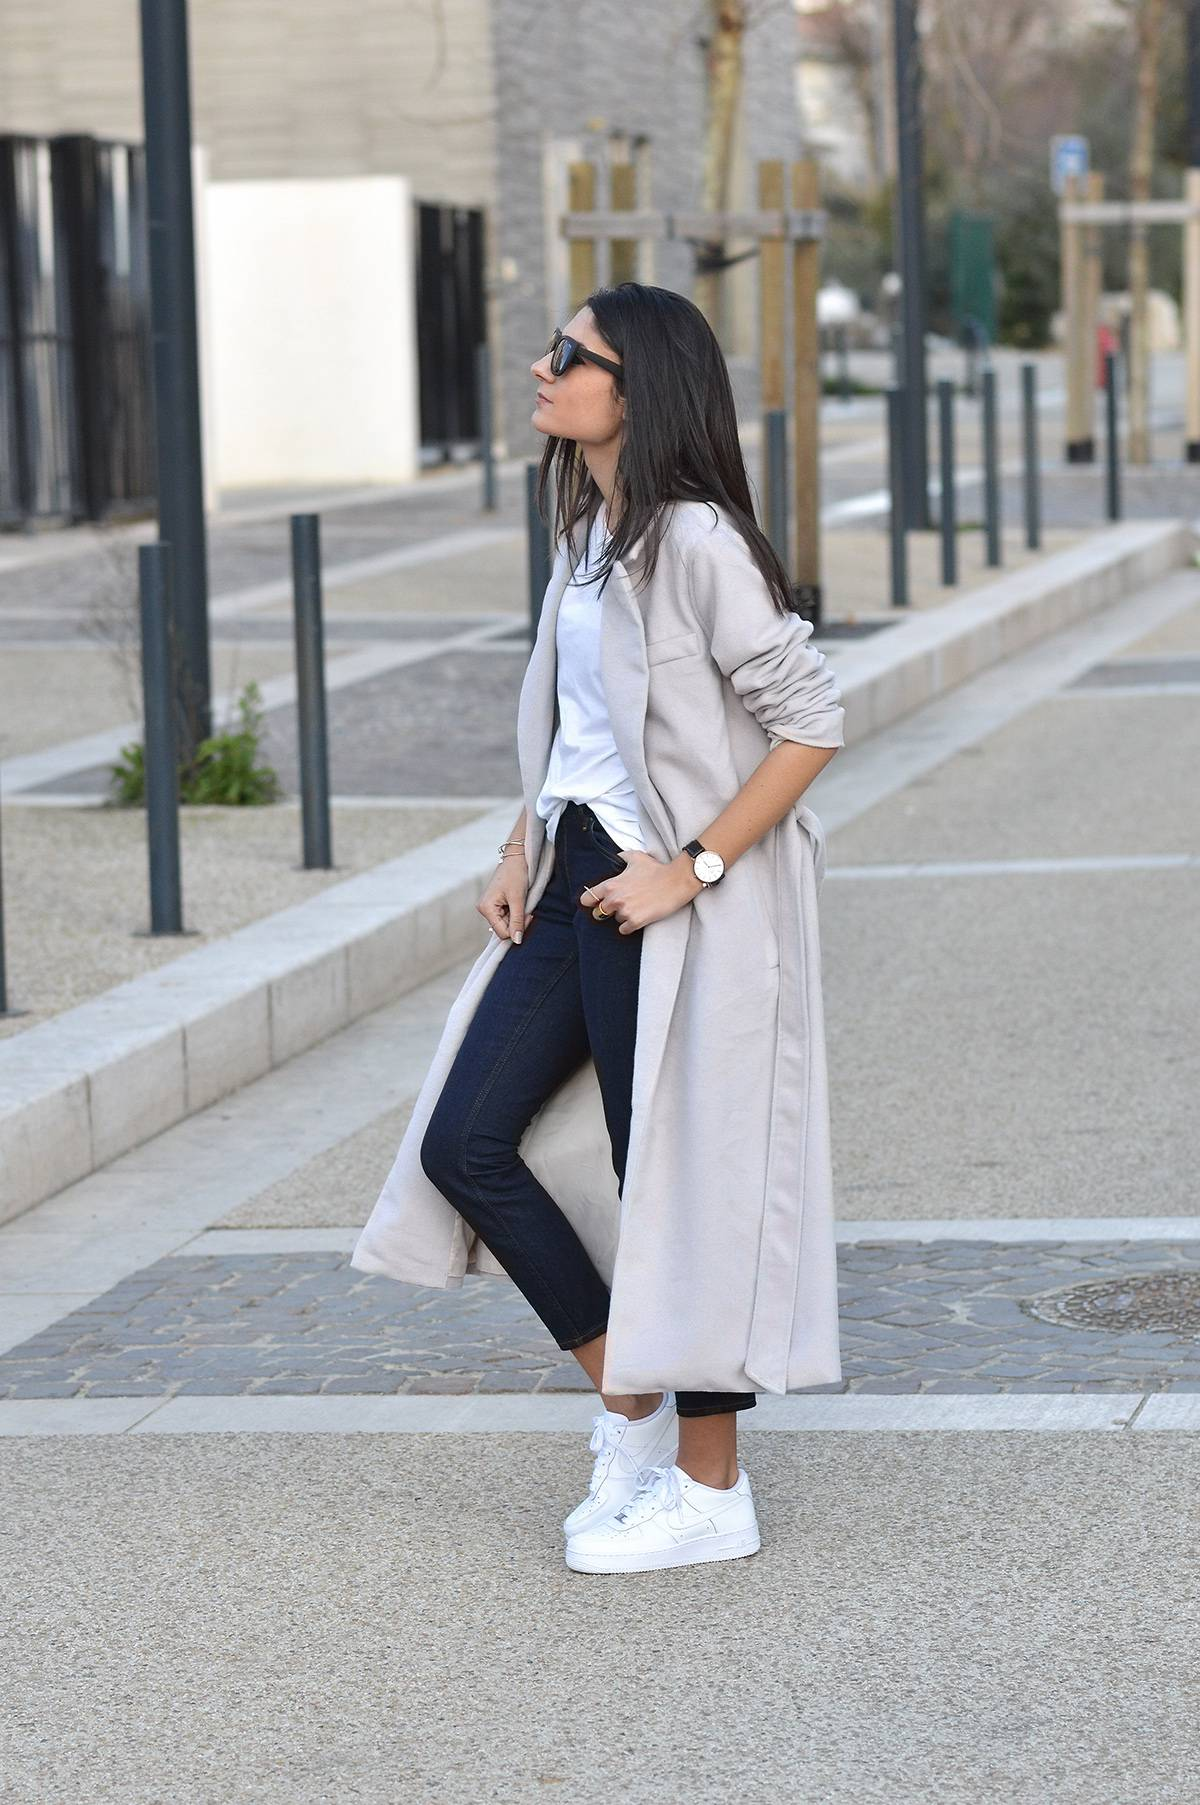 Pale maxi coats will always go a treat with cropped denim jeans and a plain white tee. Federica L. rocks this simple yet effective style, looking ready for any eventuality! Coat: Sheinside, Tee: Zara, Jeans: & Other Stories.